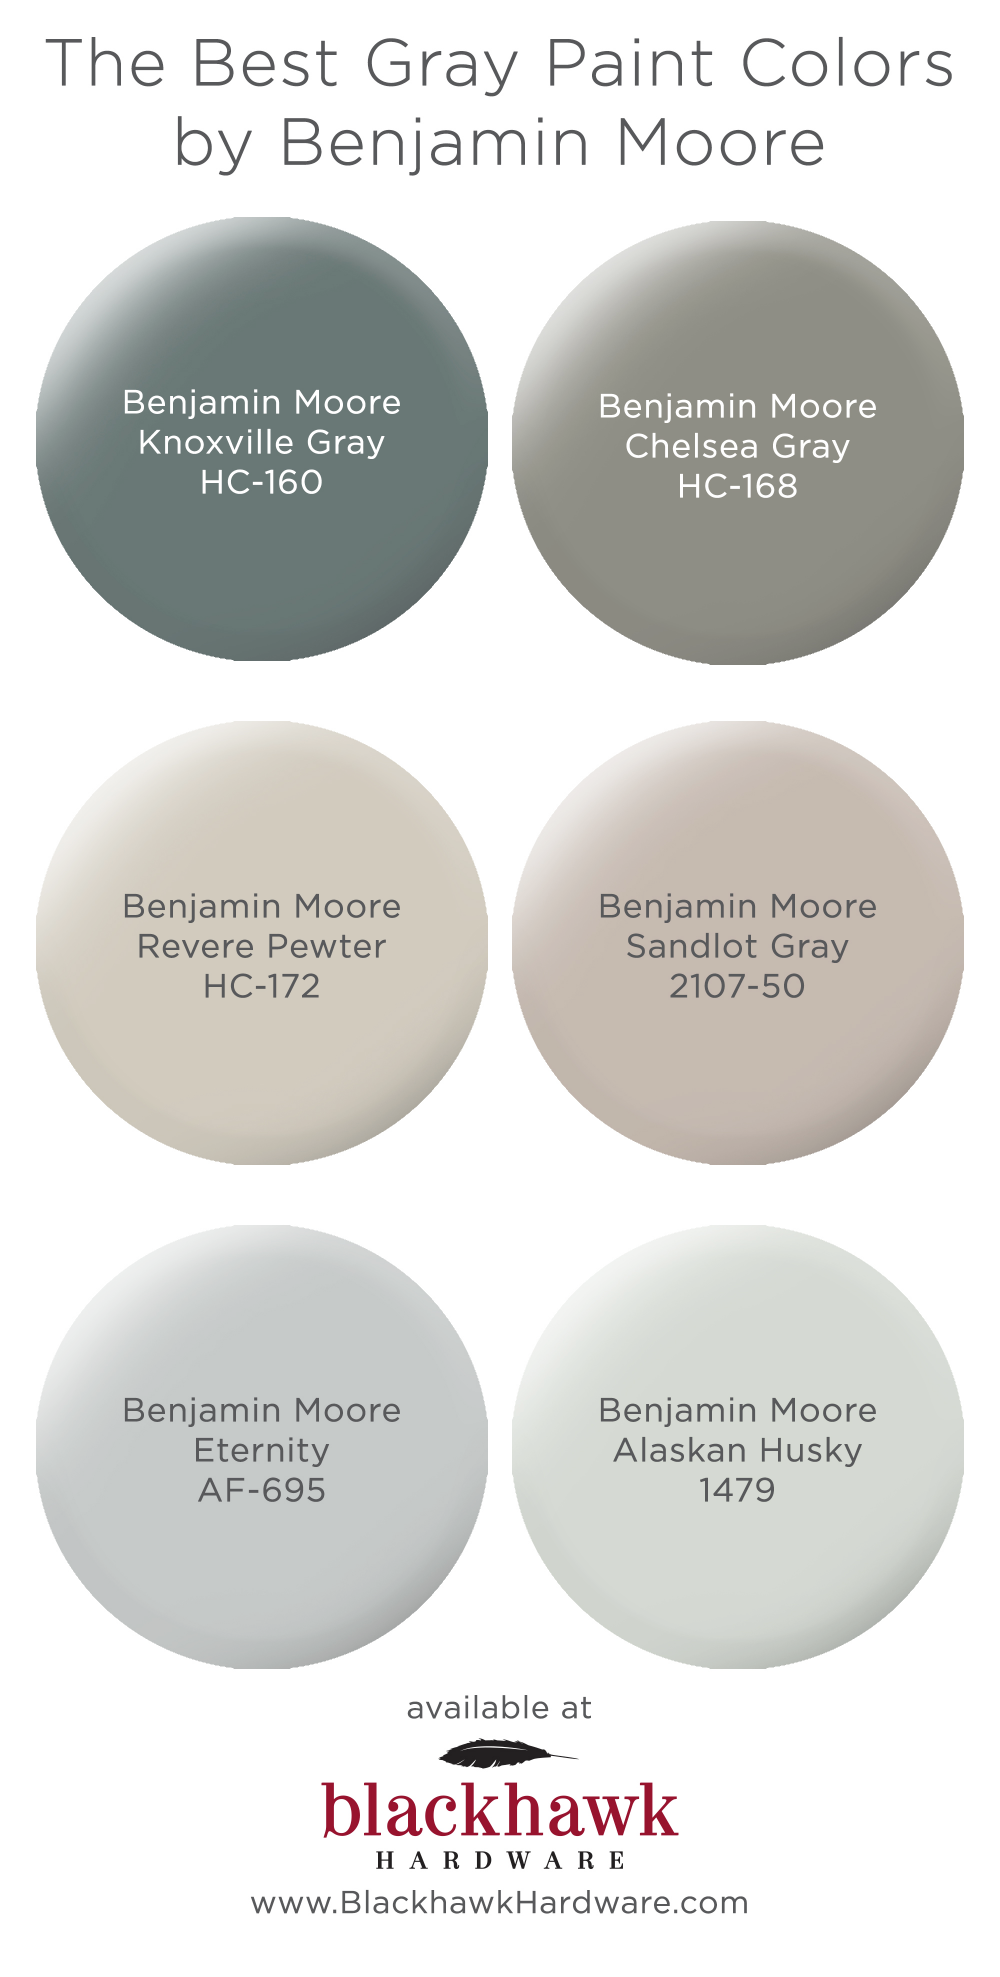 The Best Gray Paint Shades by Benjamin Moore #indoorpaintcolors